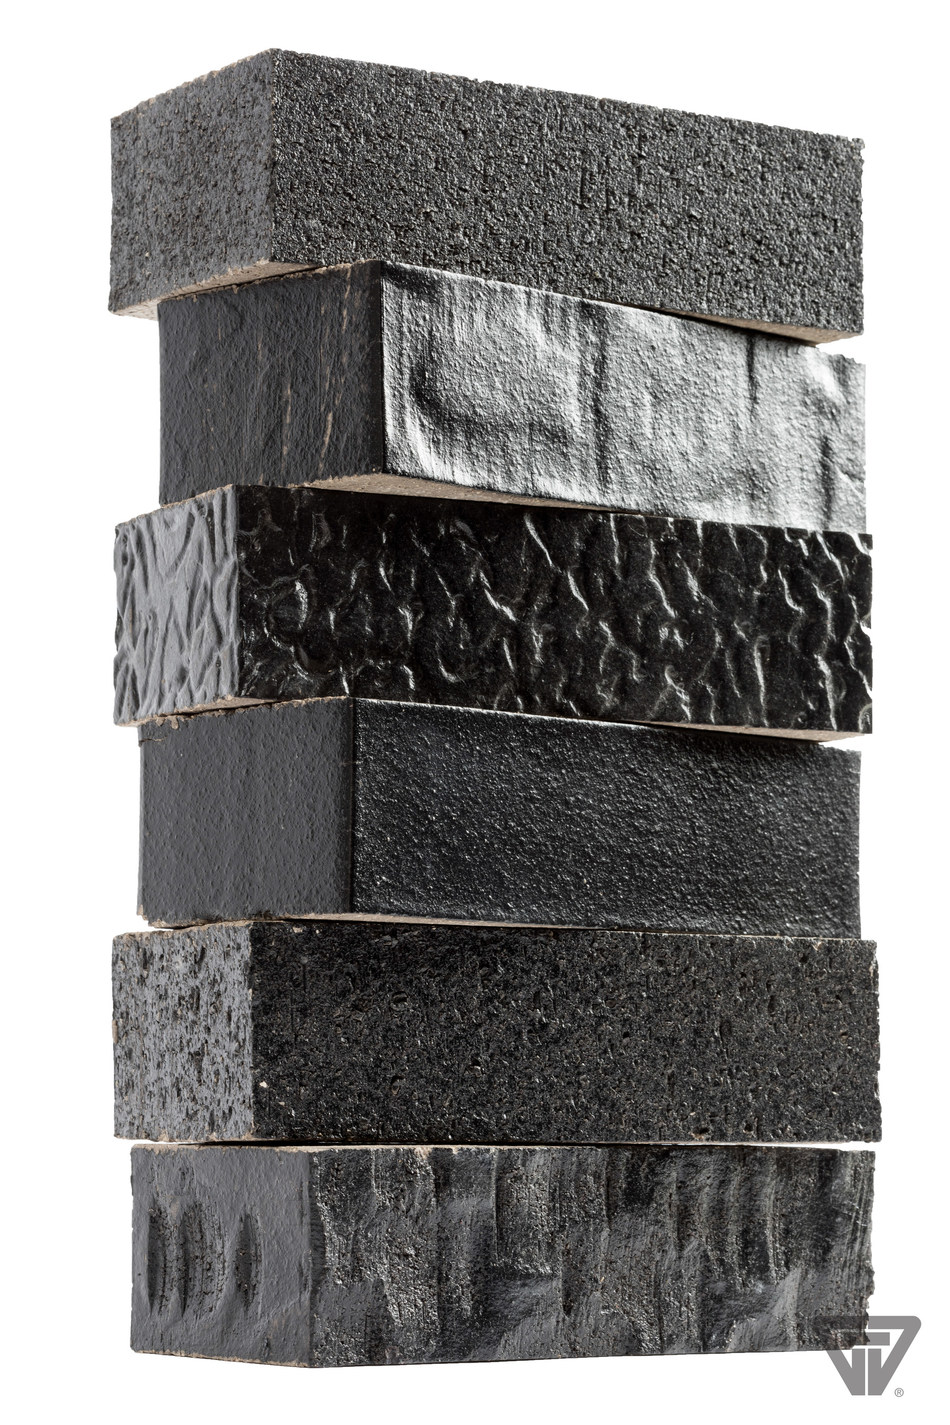 With six total surface texture options, the product offering from Glen-Gery's Hanley Plant is one of the most diverse in the industry, offering the the utmost design flexibility.   A different texture has been applied to the same product: Black Pearl. Textures from top to bottom are: wirecut, stone rolled, warble, smooth, rough and craftsman.